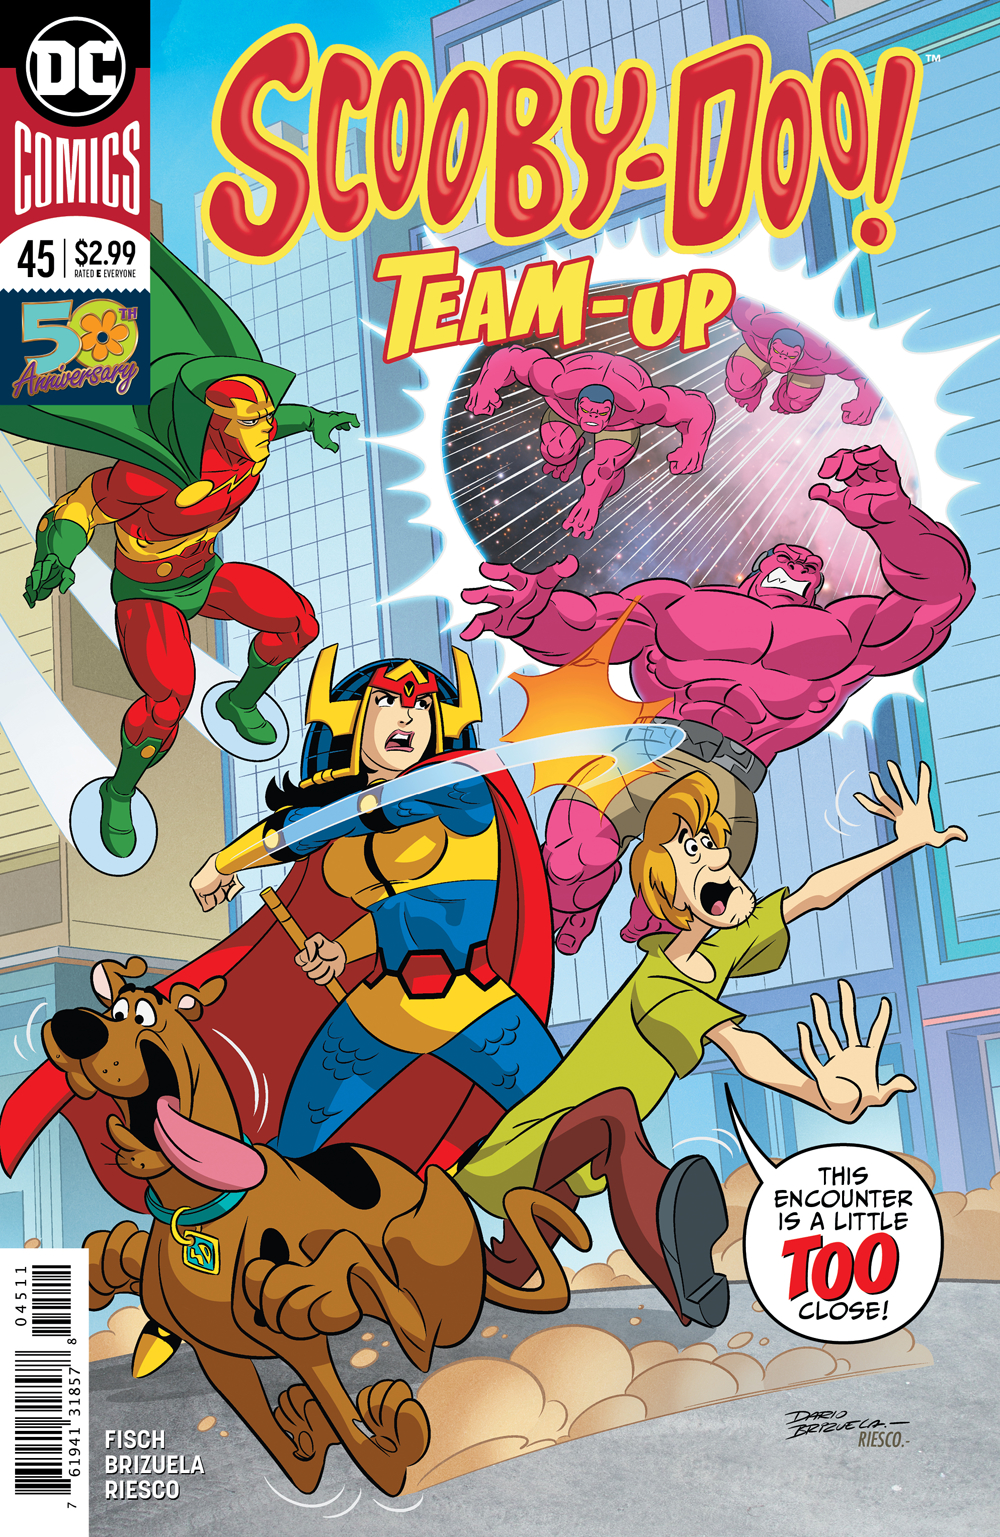 SCOOBY DOO TEAM UP #45